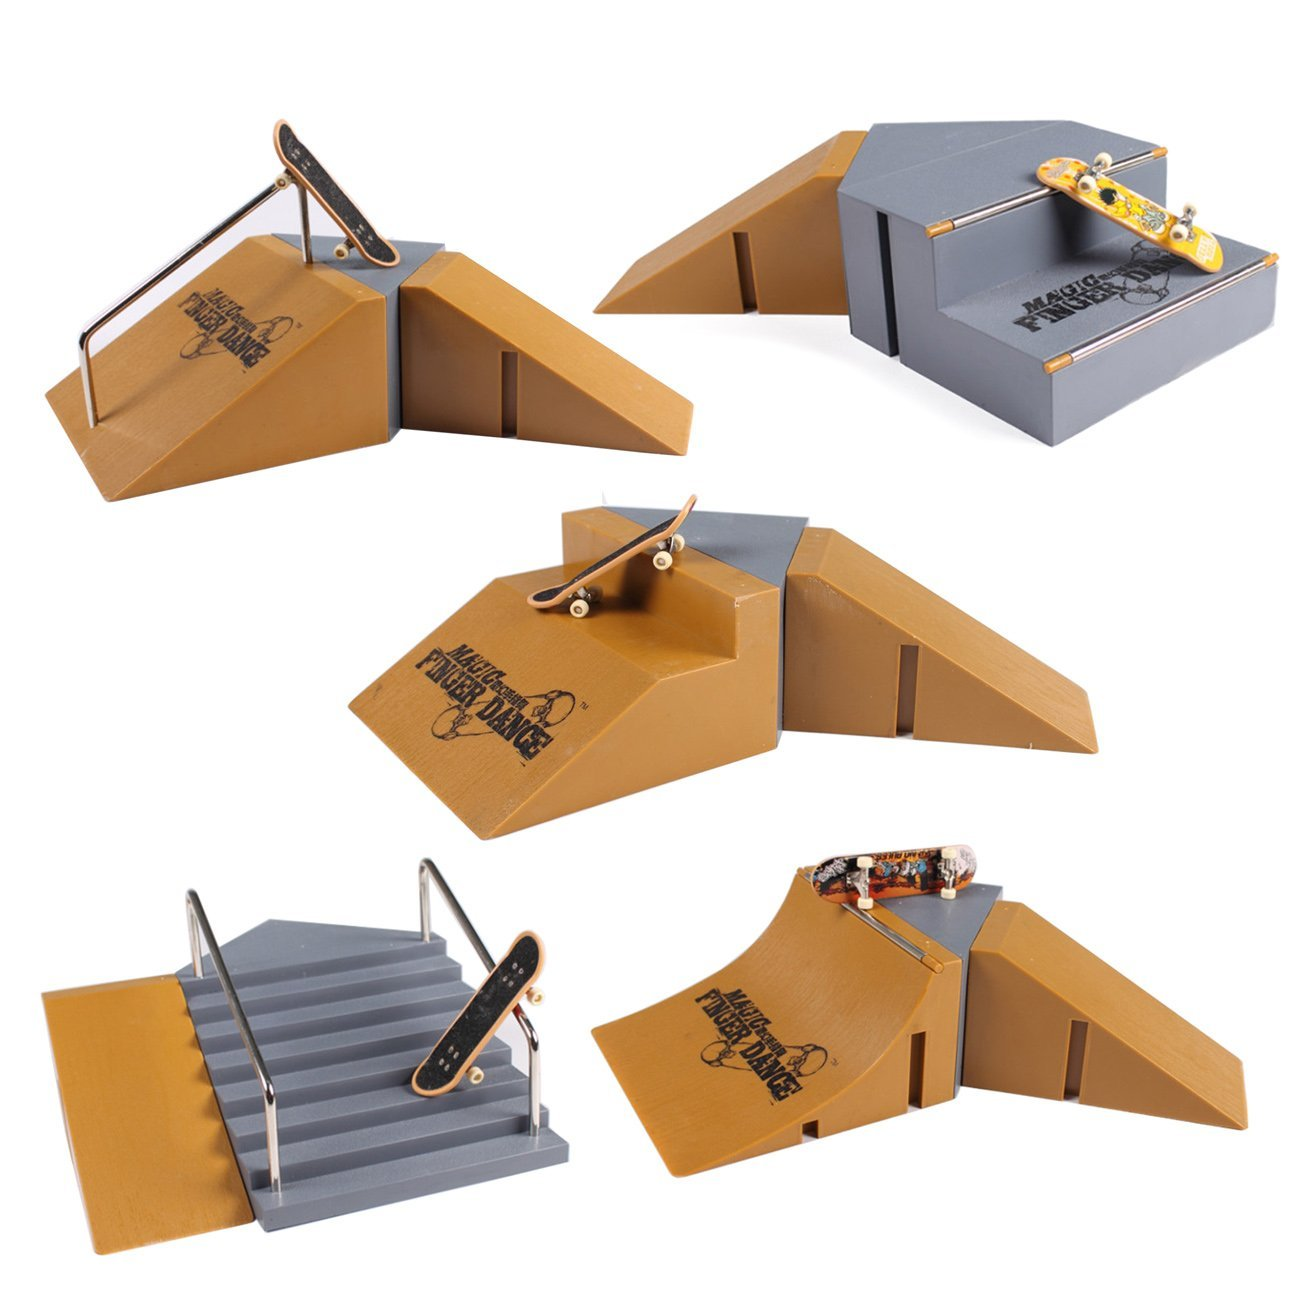 Fanci Finger Skateboard Ramps Park Set for Tech Deck Finger Board HB95-6 Super Large Package include 5 Boxes